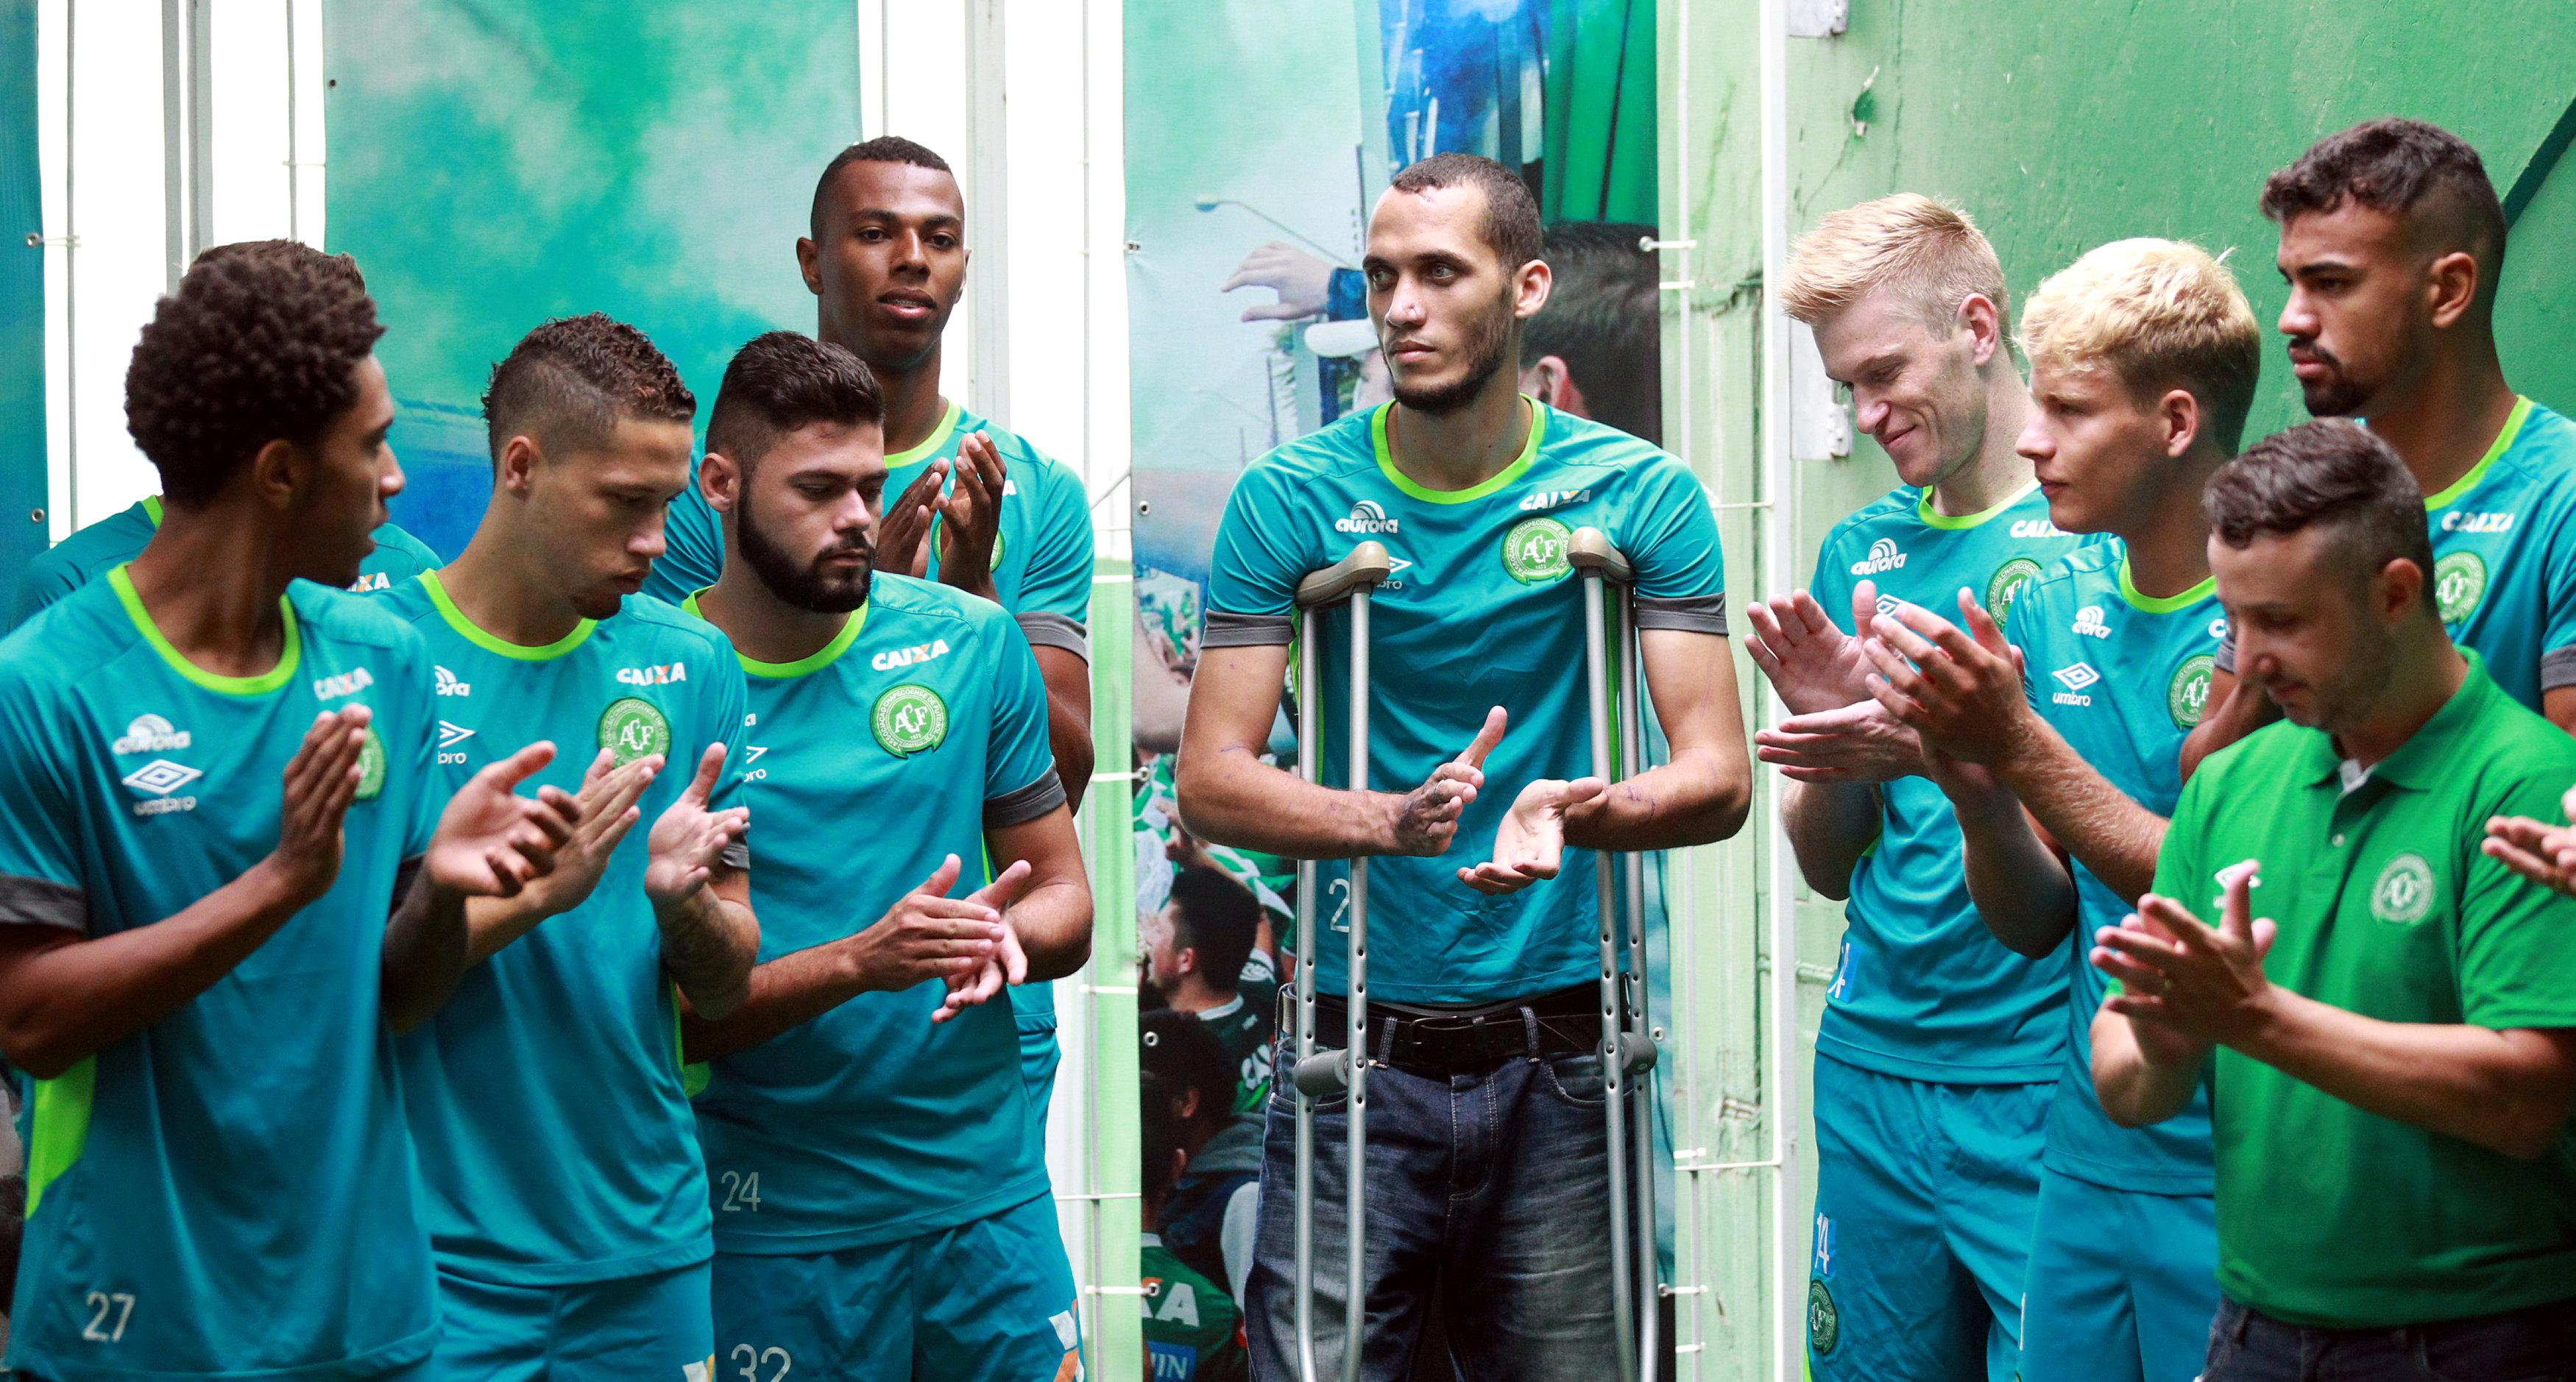 Chapecoense crash survivor Neto talks to youth players who will now be in the first team